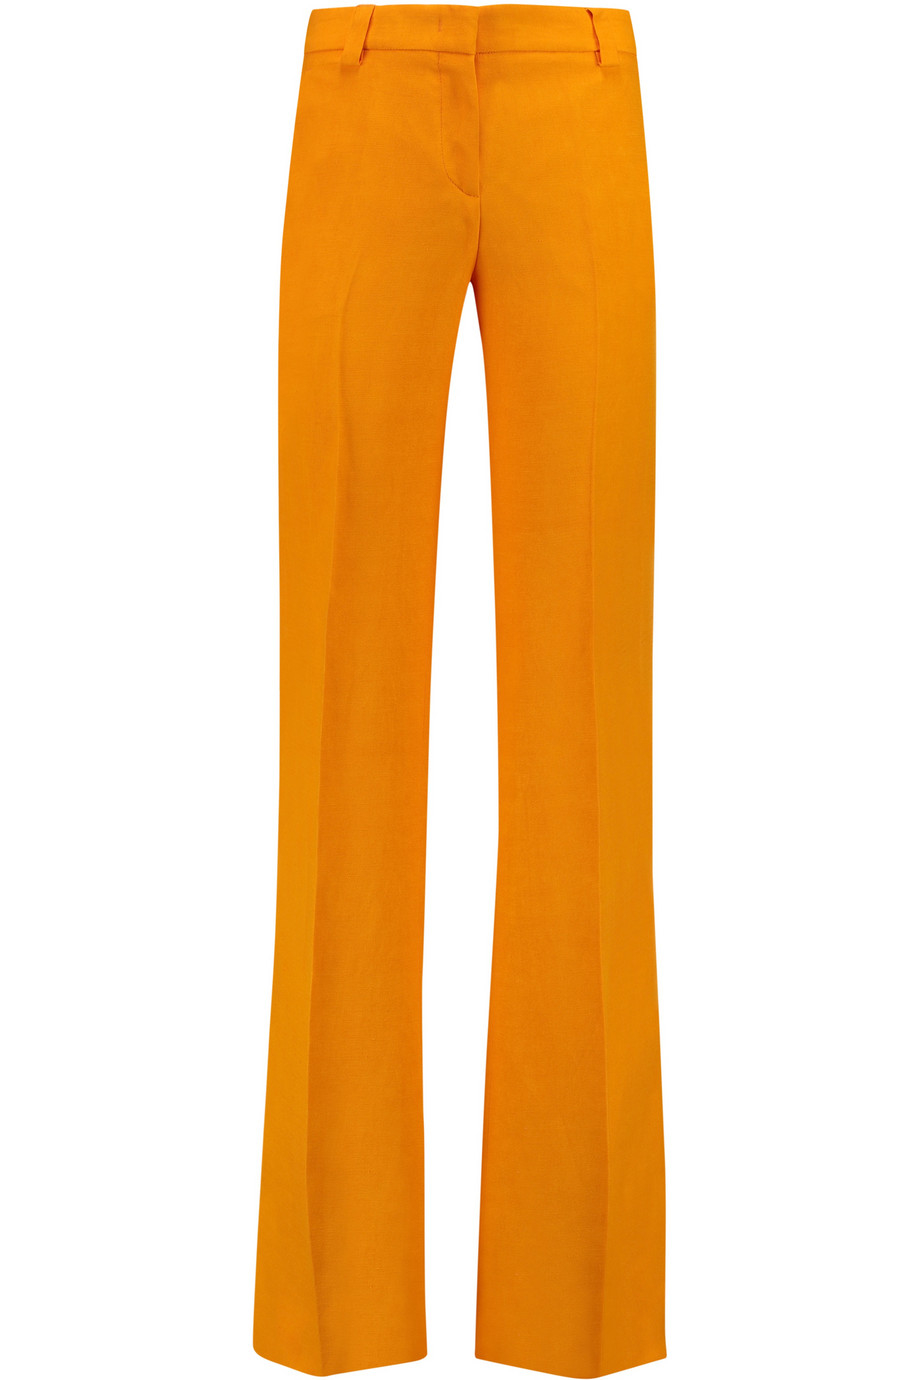 Unique Dynafit  React 34 Women39s Functional Pants Orange  Buy It At The